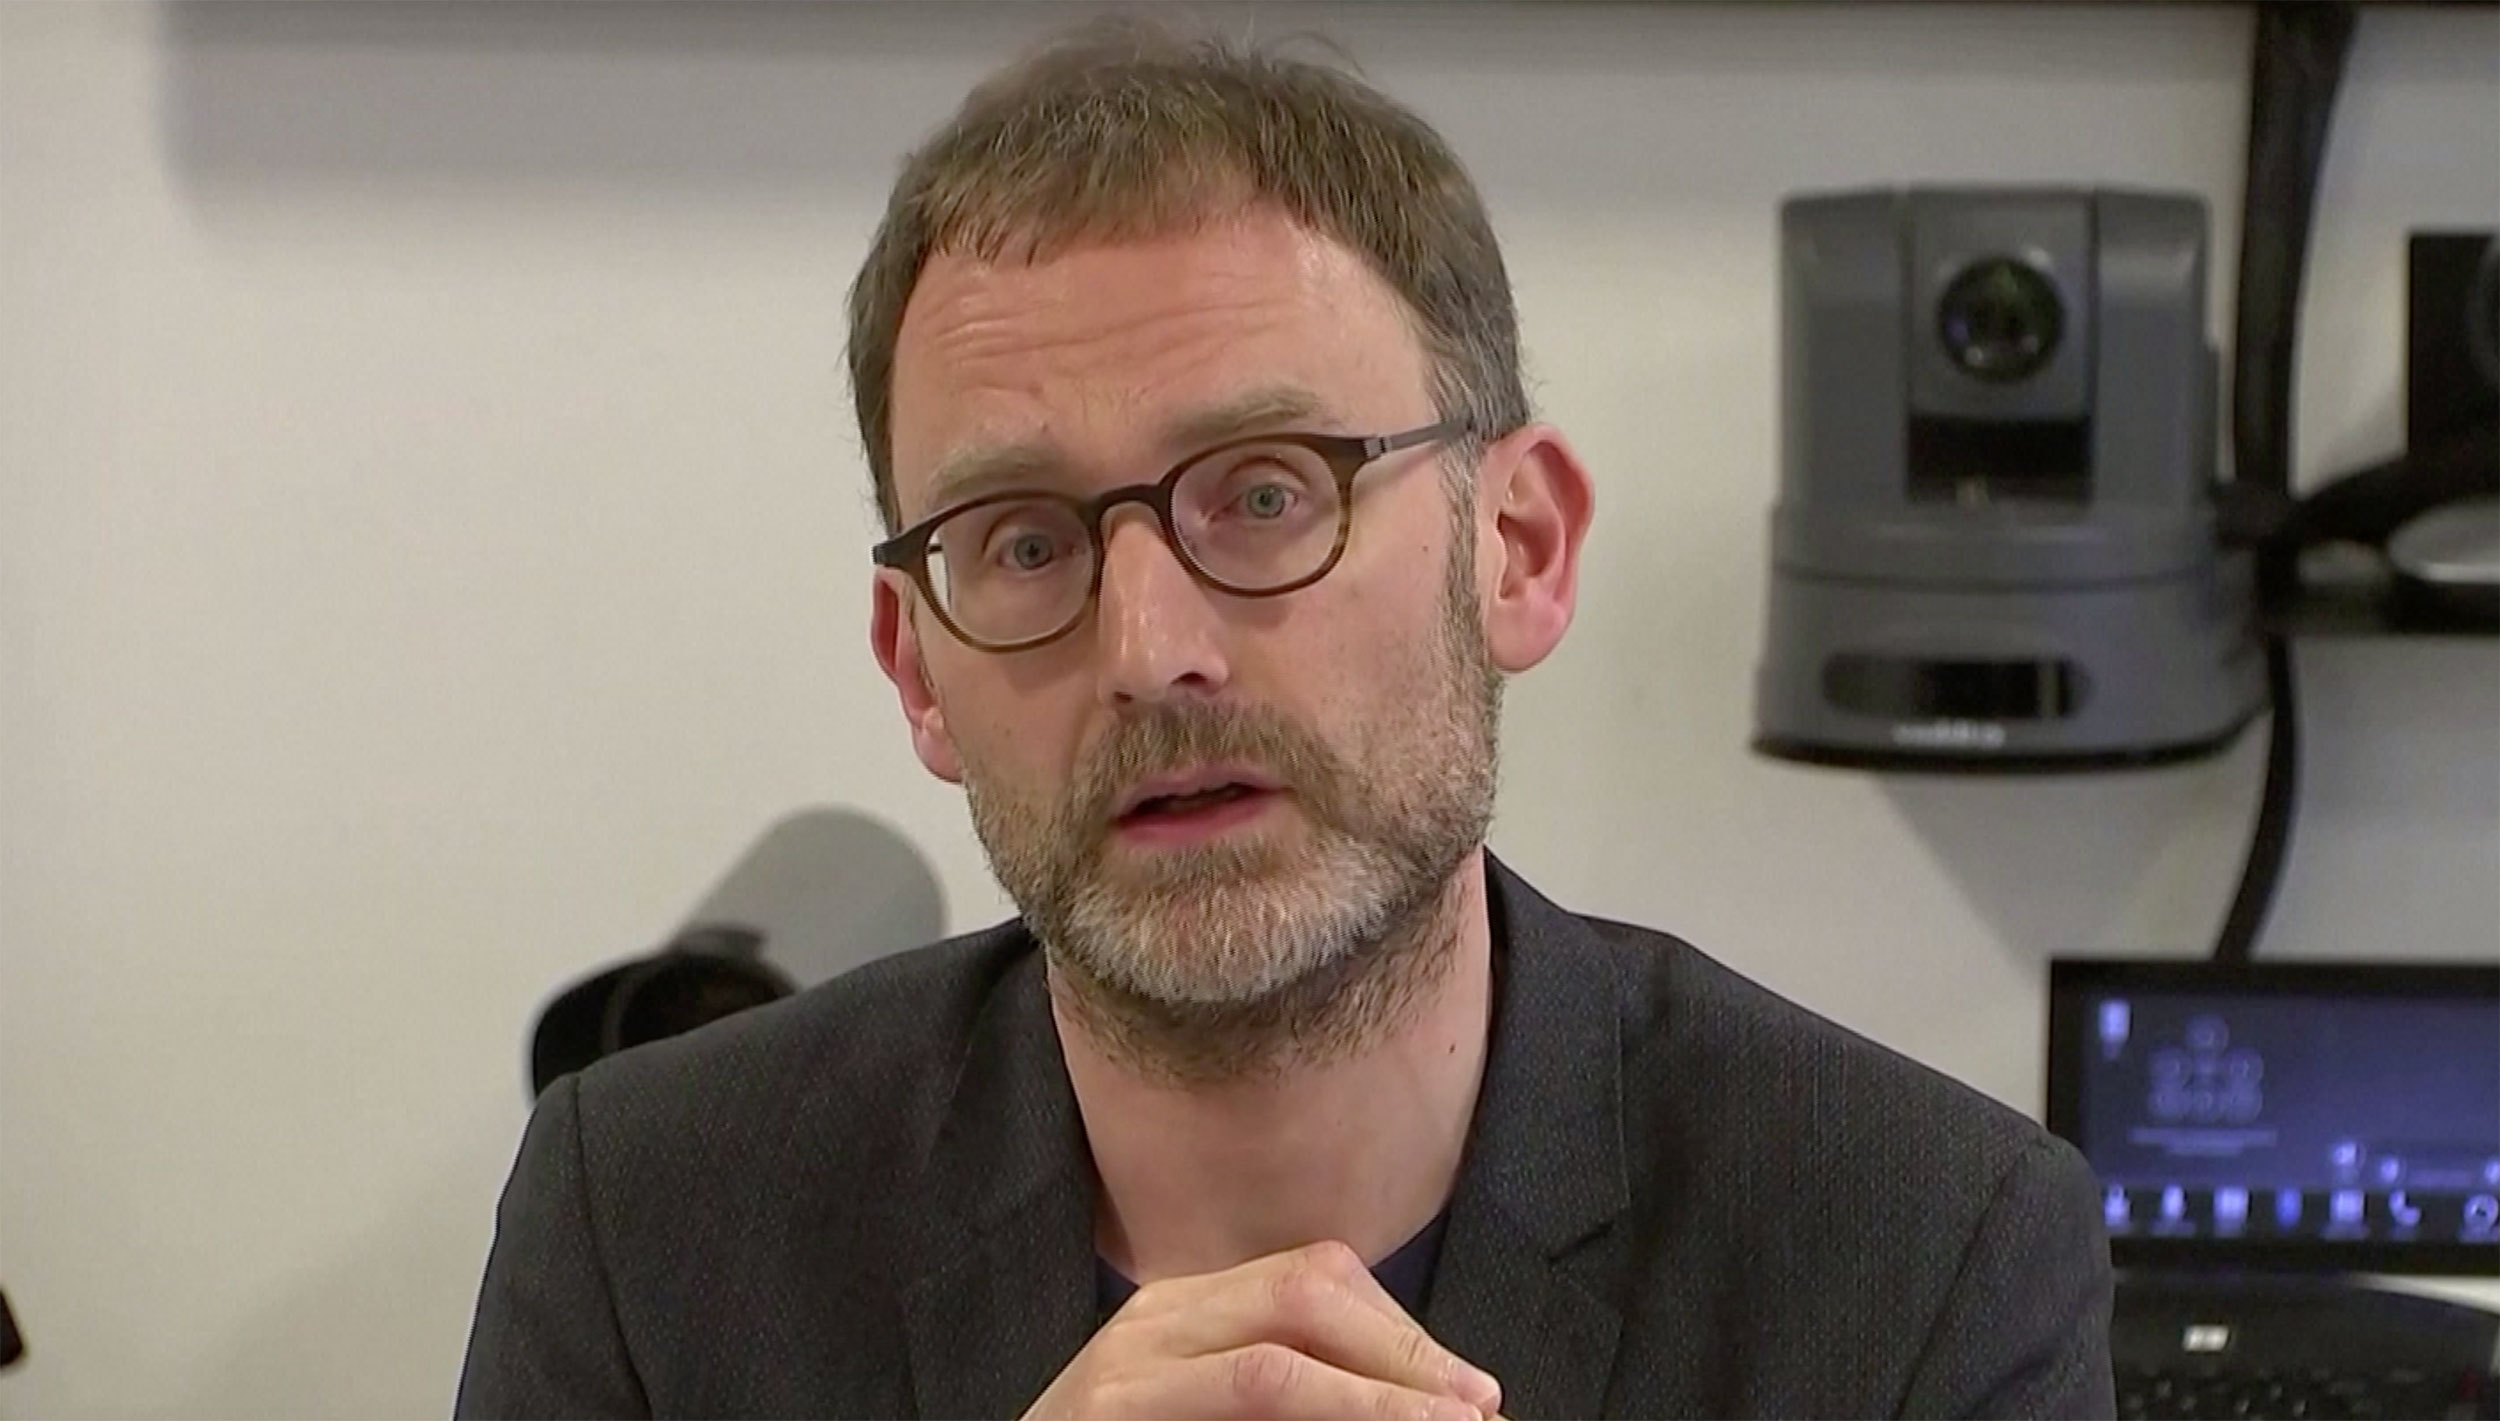 Professor Neil Ferguson speaks at a news conference in London, England, on January 22.